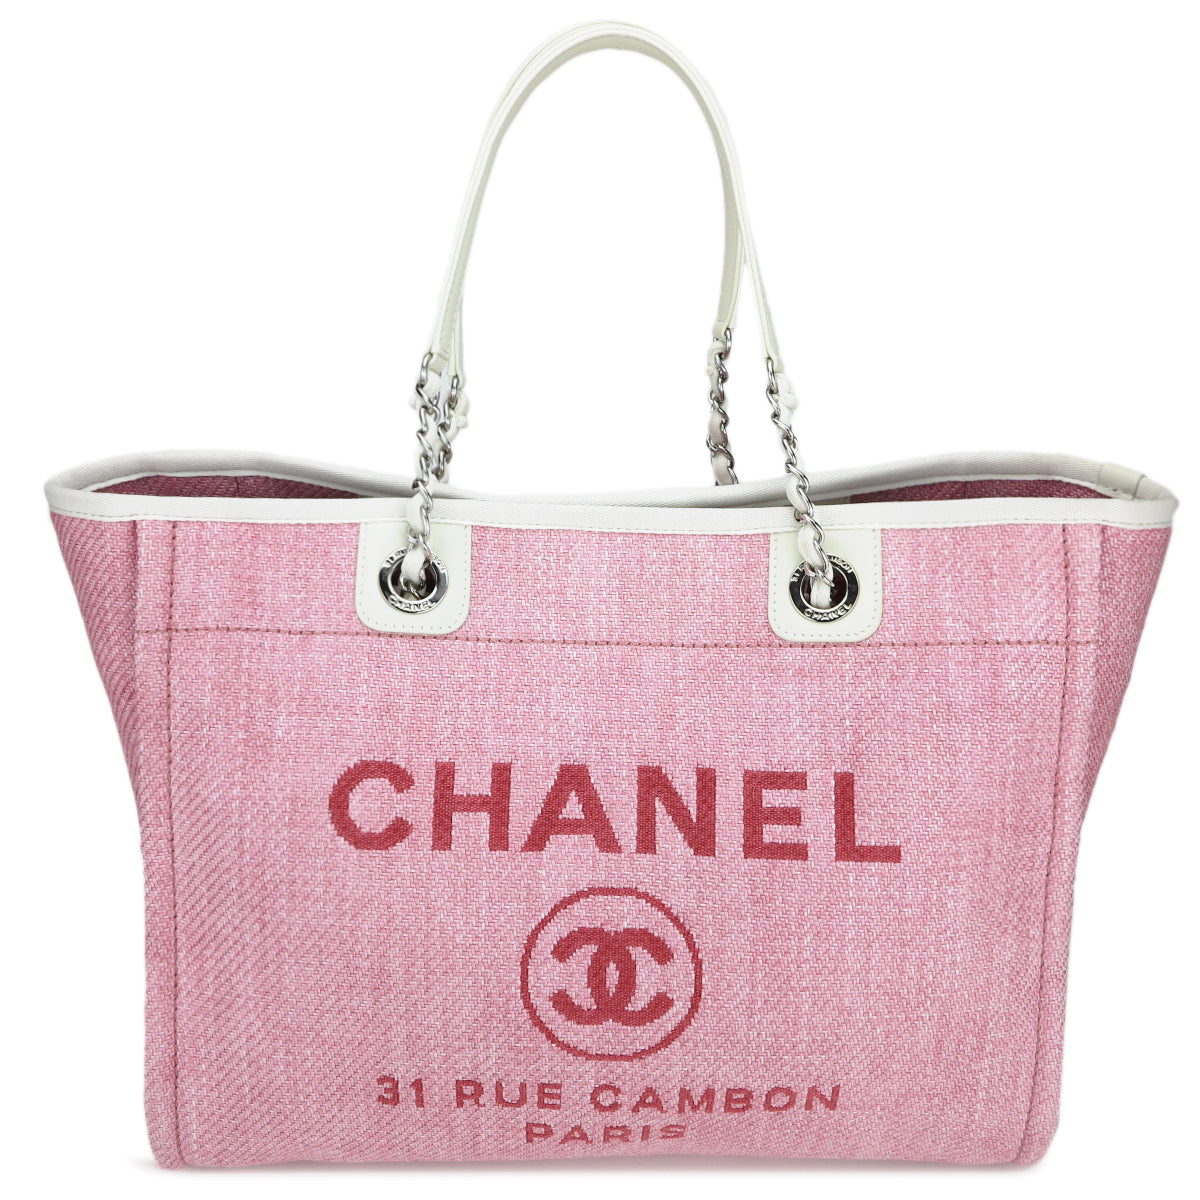 021791f3f748 CHANEL Small Deauville Tote in Pink Canvas - Dearluxe.com ...